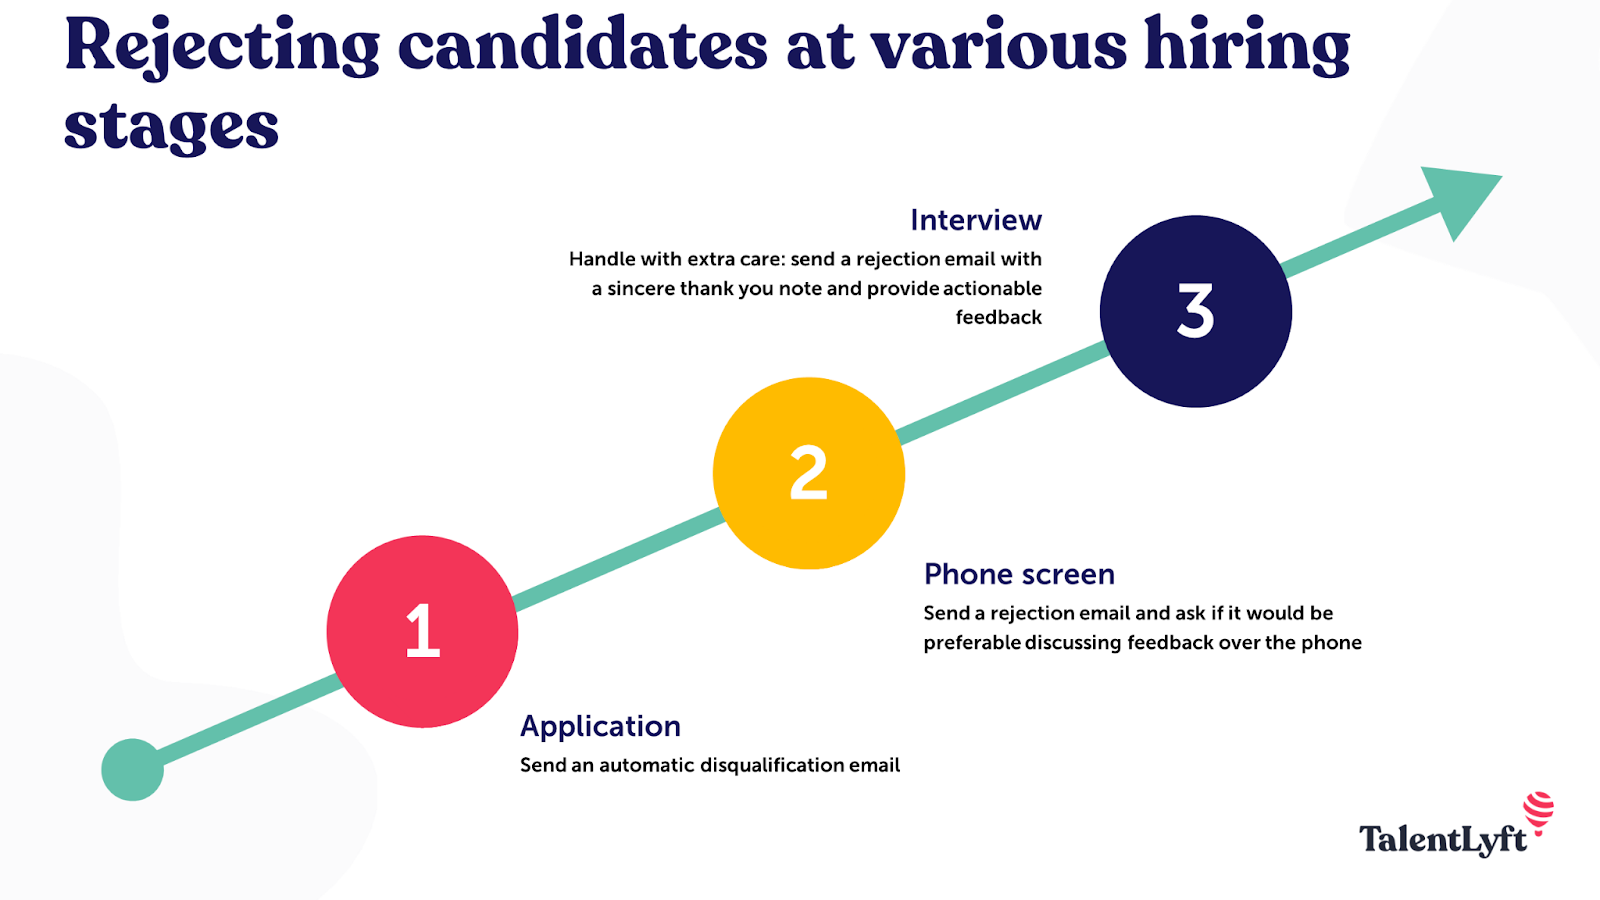 rejecting candidates in different hiring stages